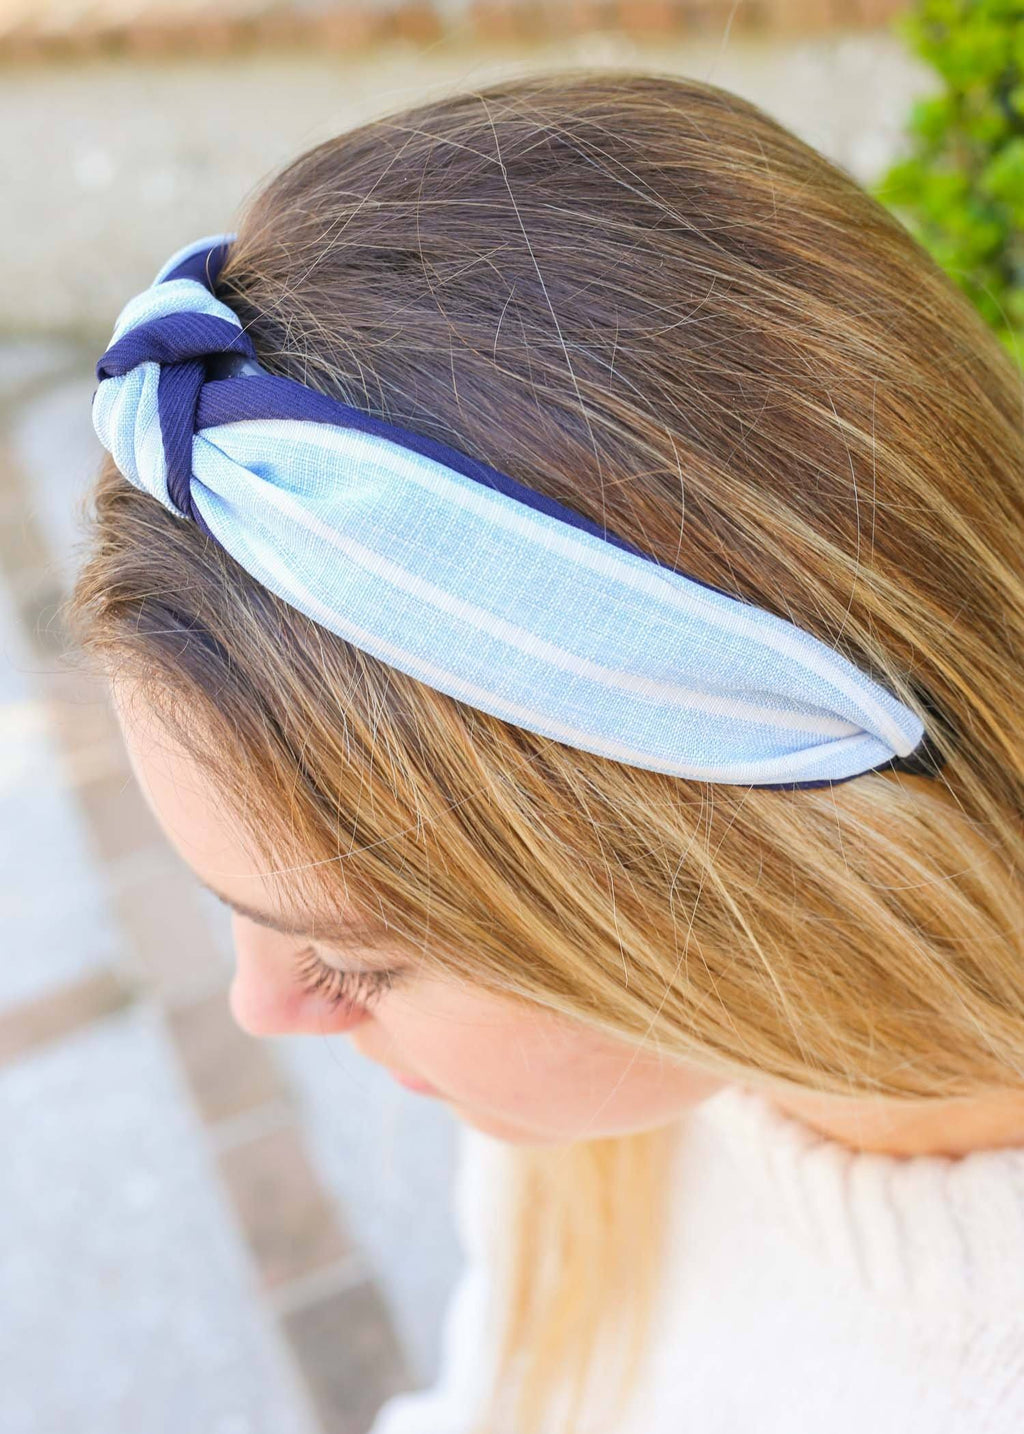 Nautica Blue Striped Headband - Caroline Hill